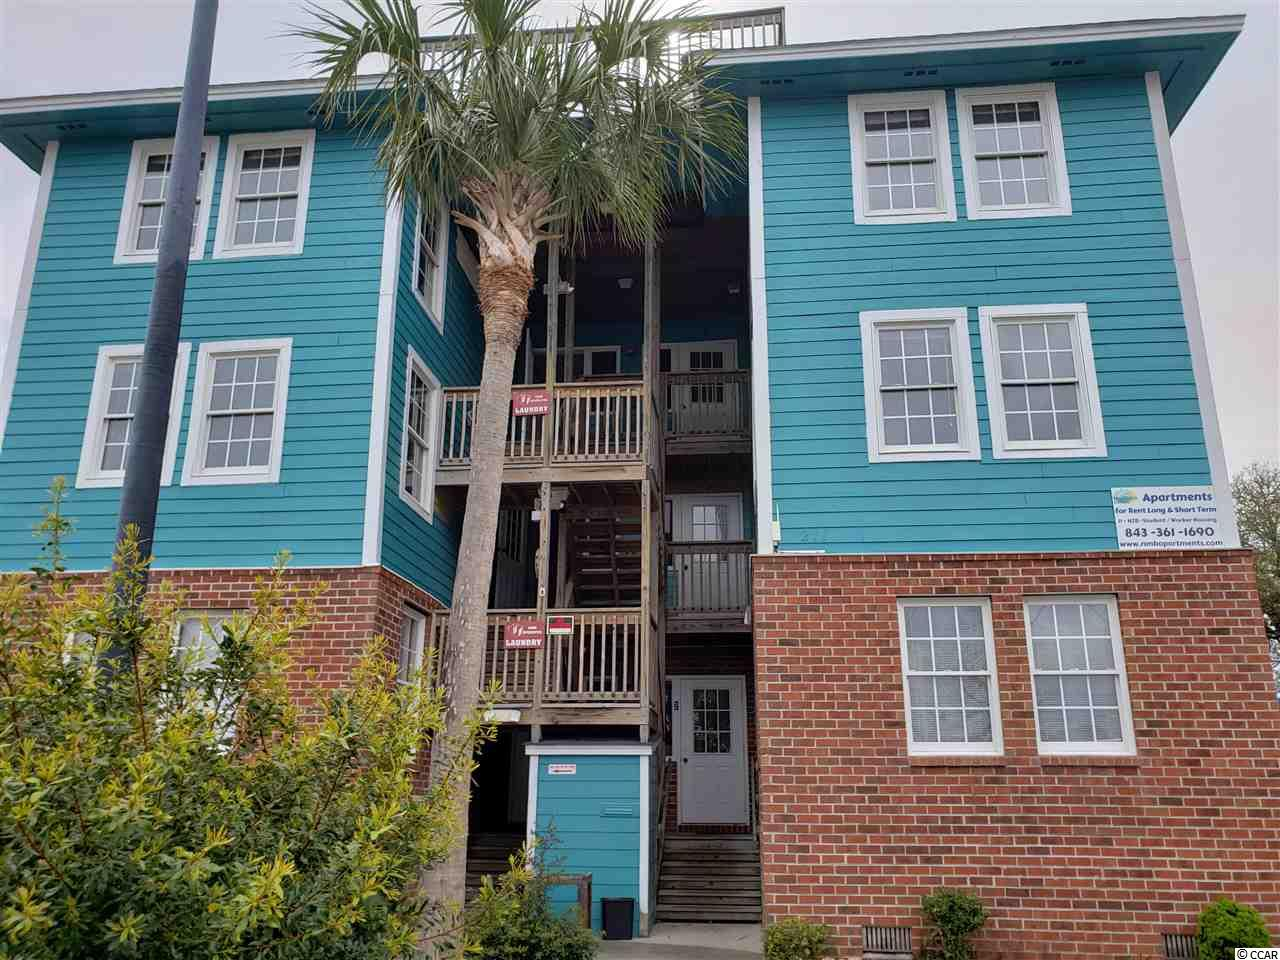 A six unit building built on a commercial lot across from Ocean Blvd and behind Main St in NMB.  Built in 2003, six 2 bedroom units in a well maintained structure at  a prime location.  The seller has the building next door for sale as well.  ENTRY TO THE INTERIOR IS NOT AUTHORIZED!